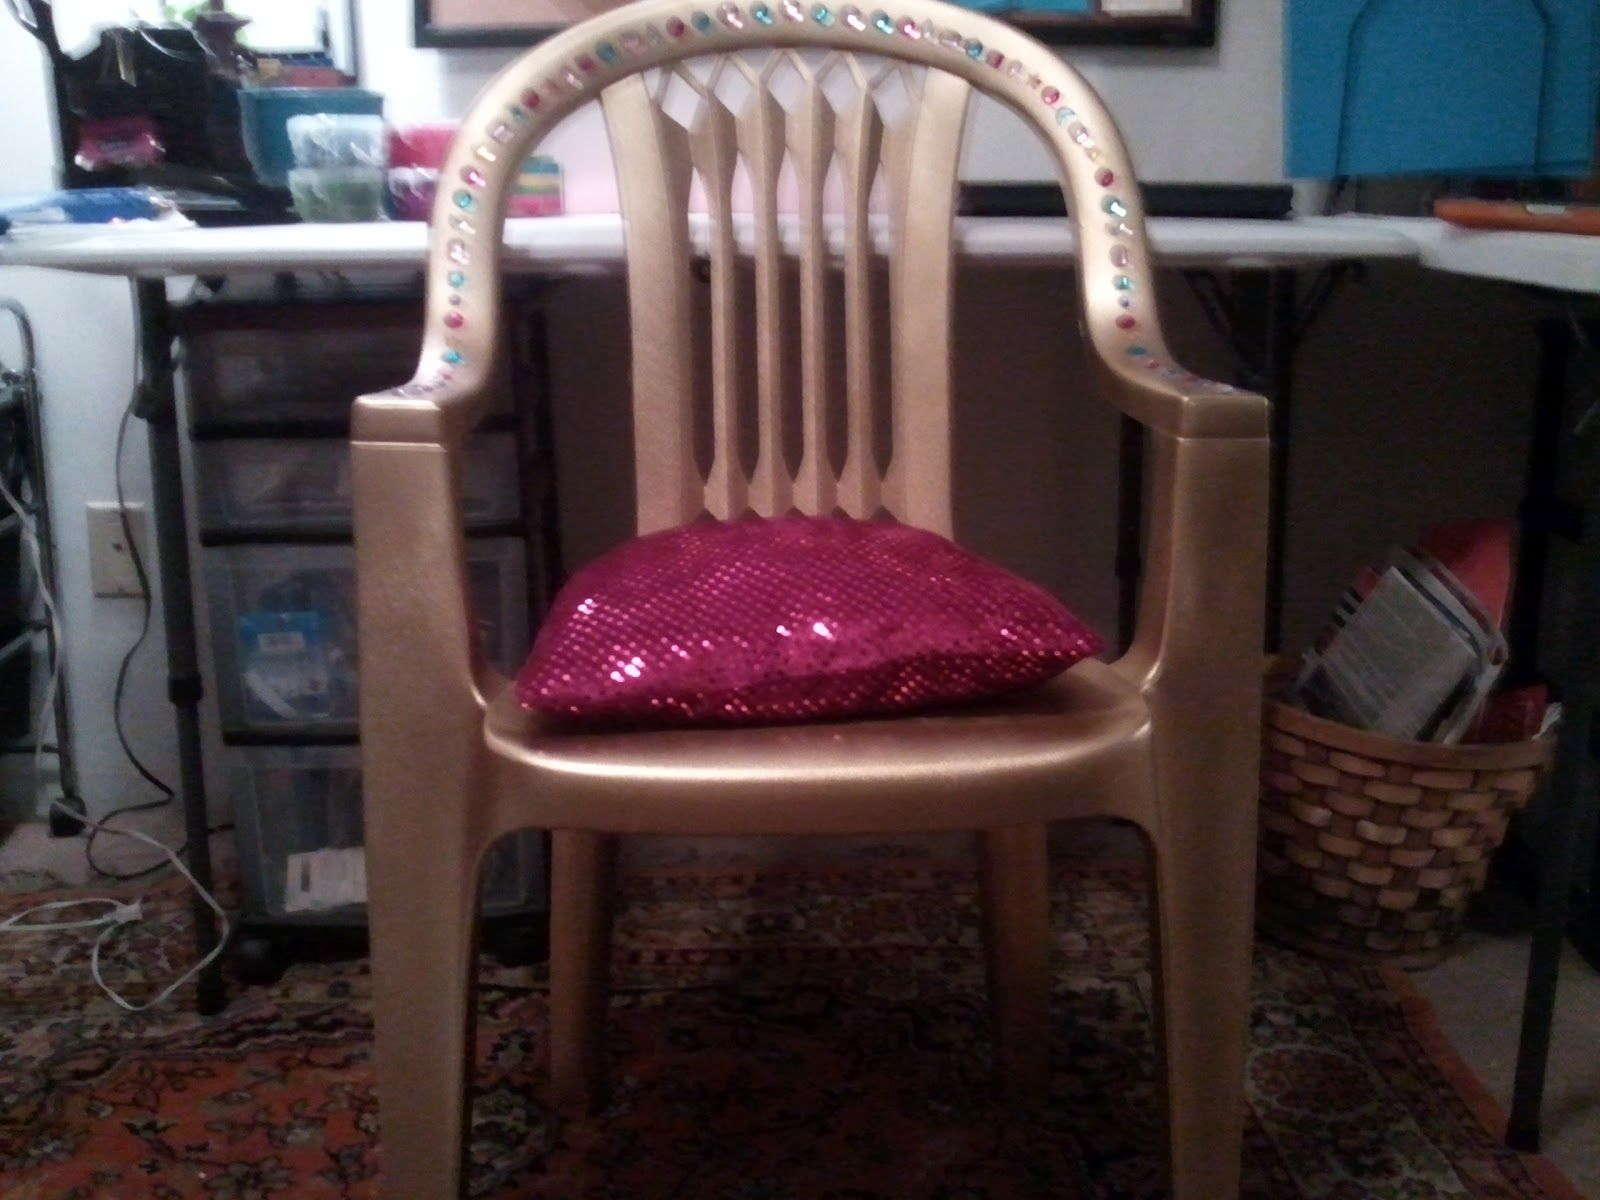 Diy throne with a plastic lawn chair vbs decorations for Diy king throne chair